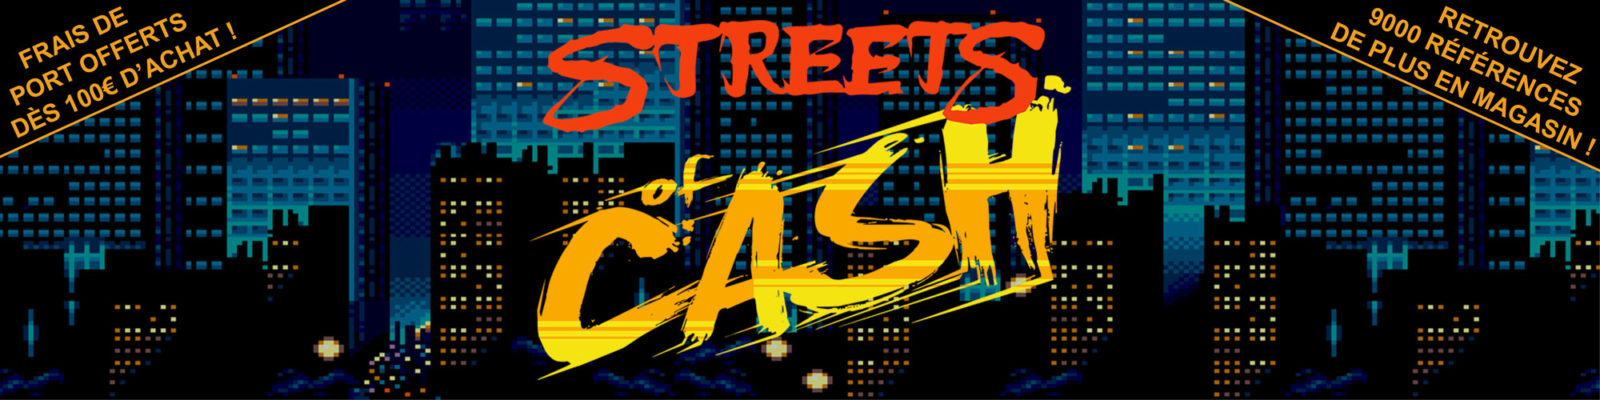 Streets of Cash